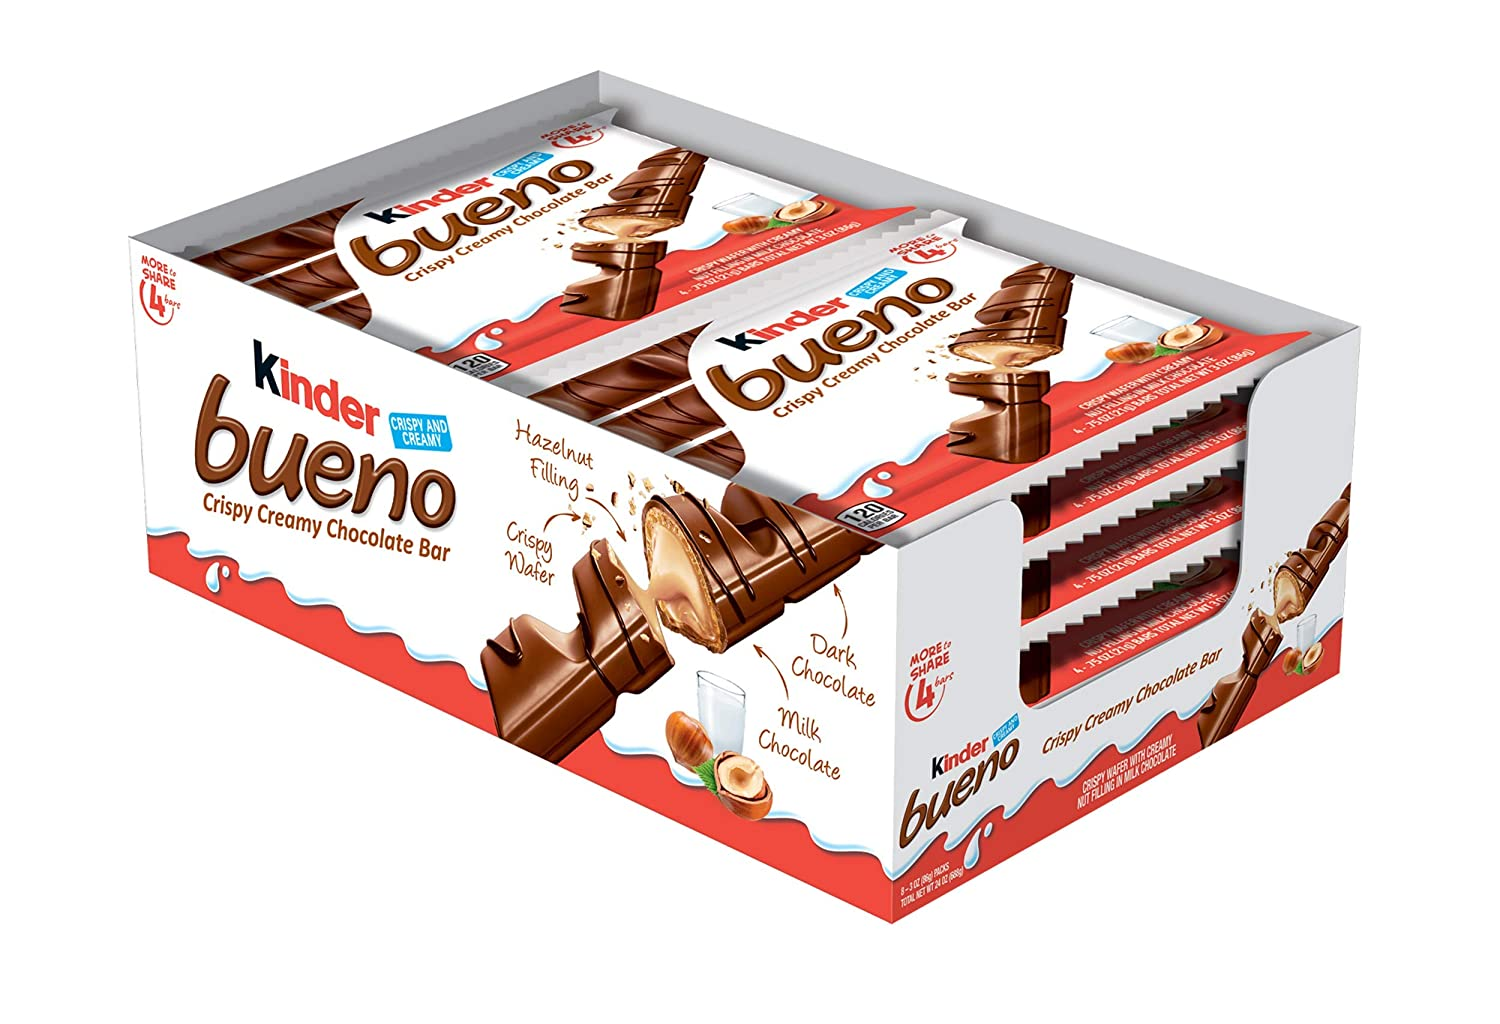 Kinder Bueno Milk Chocolate & Hazelnut Cream Candy bar, 8 Pack, 4 Individually Wrapped .75 Oz Bars Per Pack, 8 Count